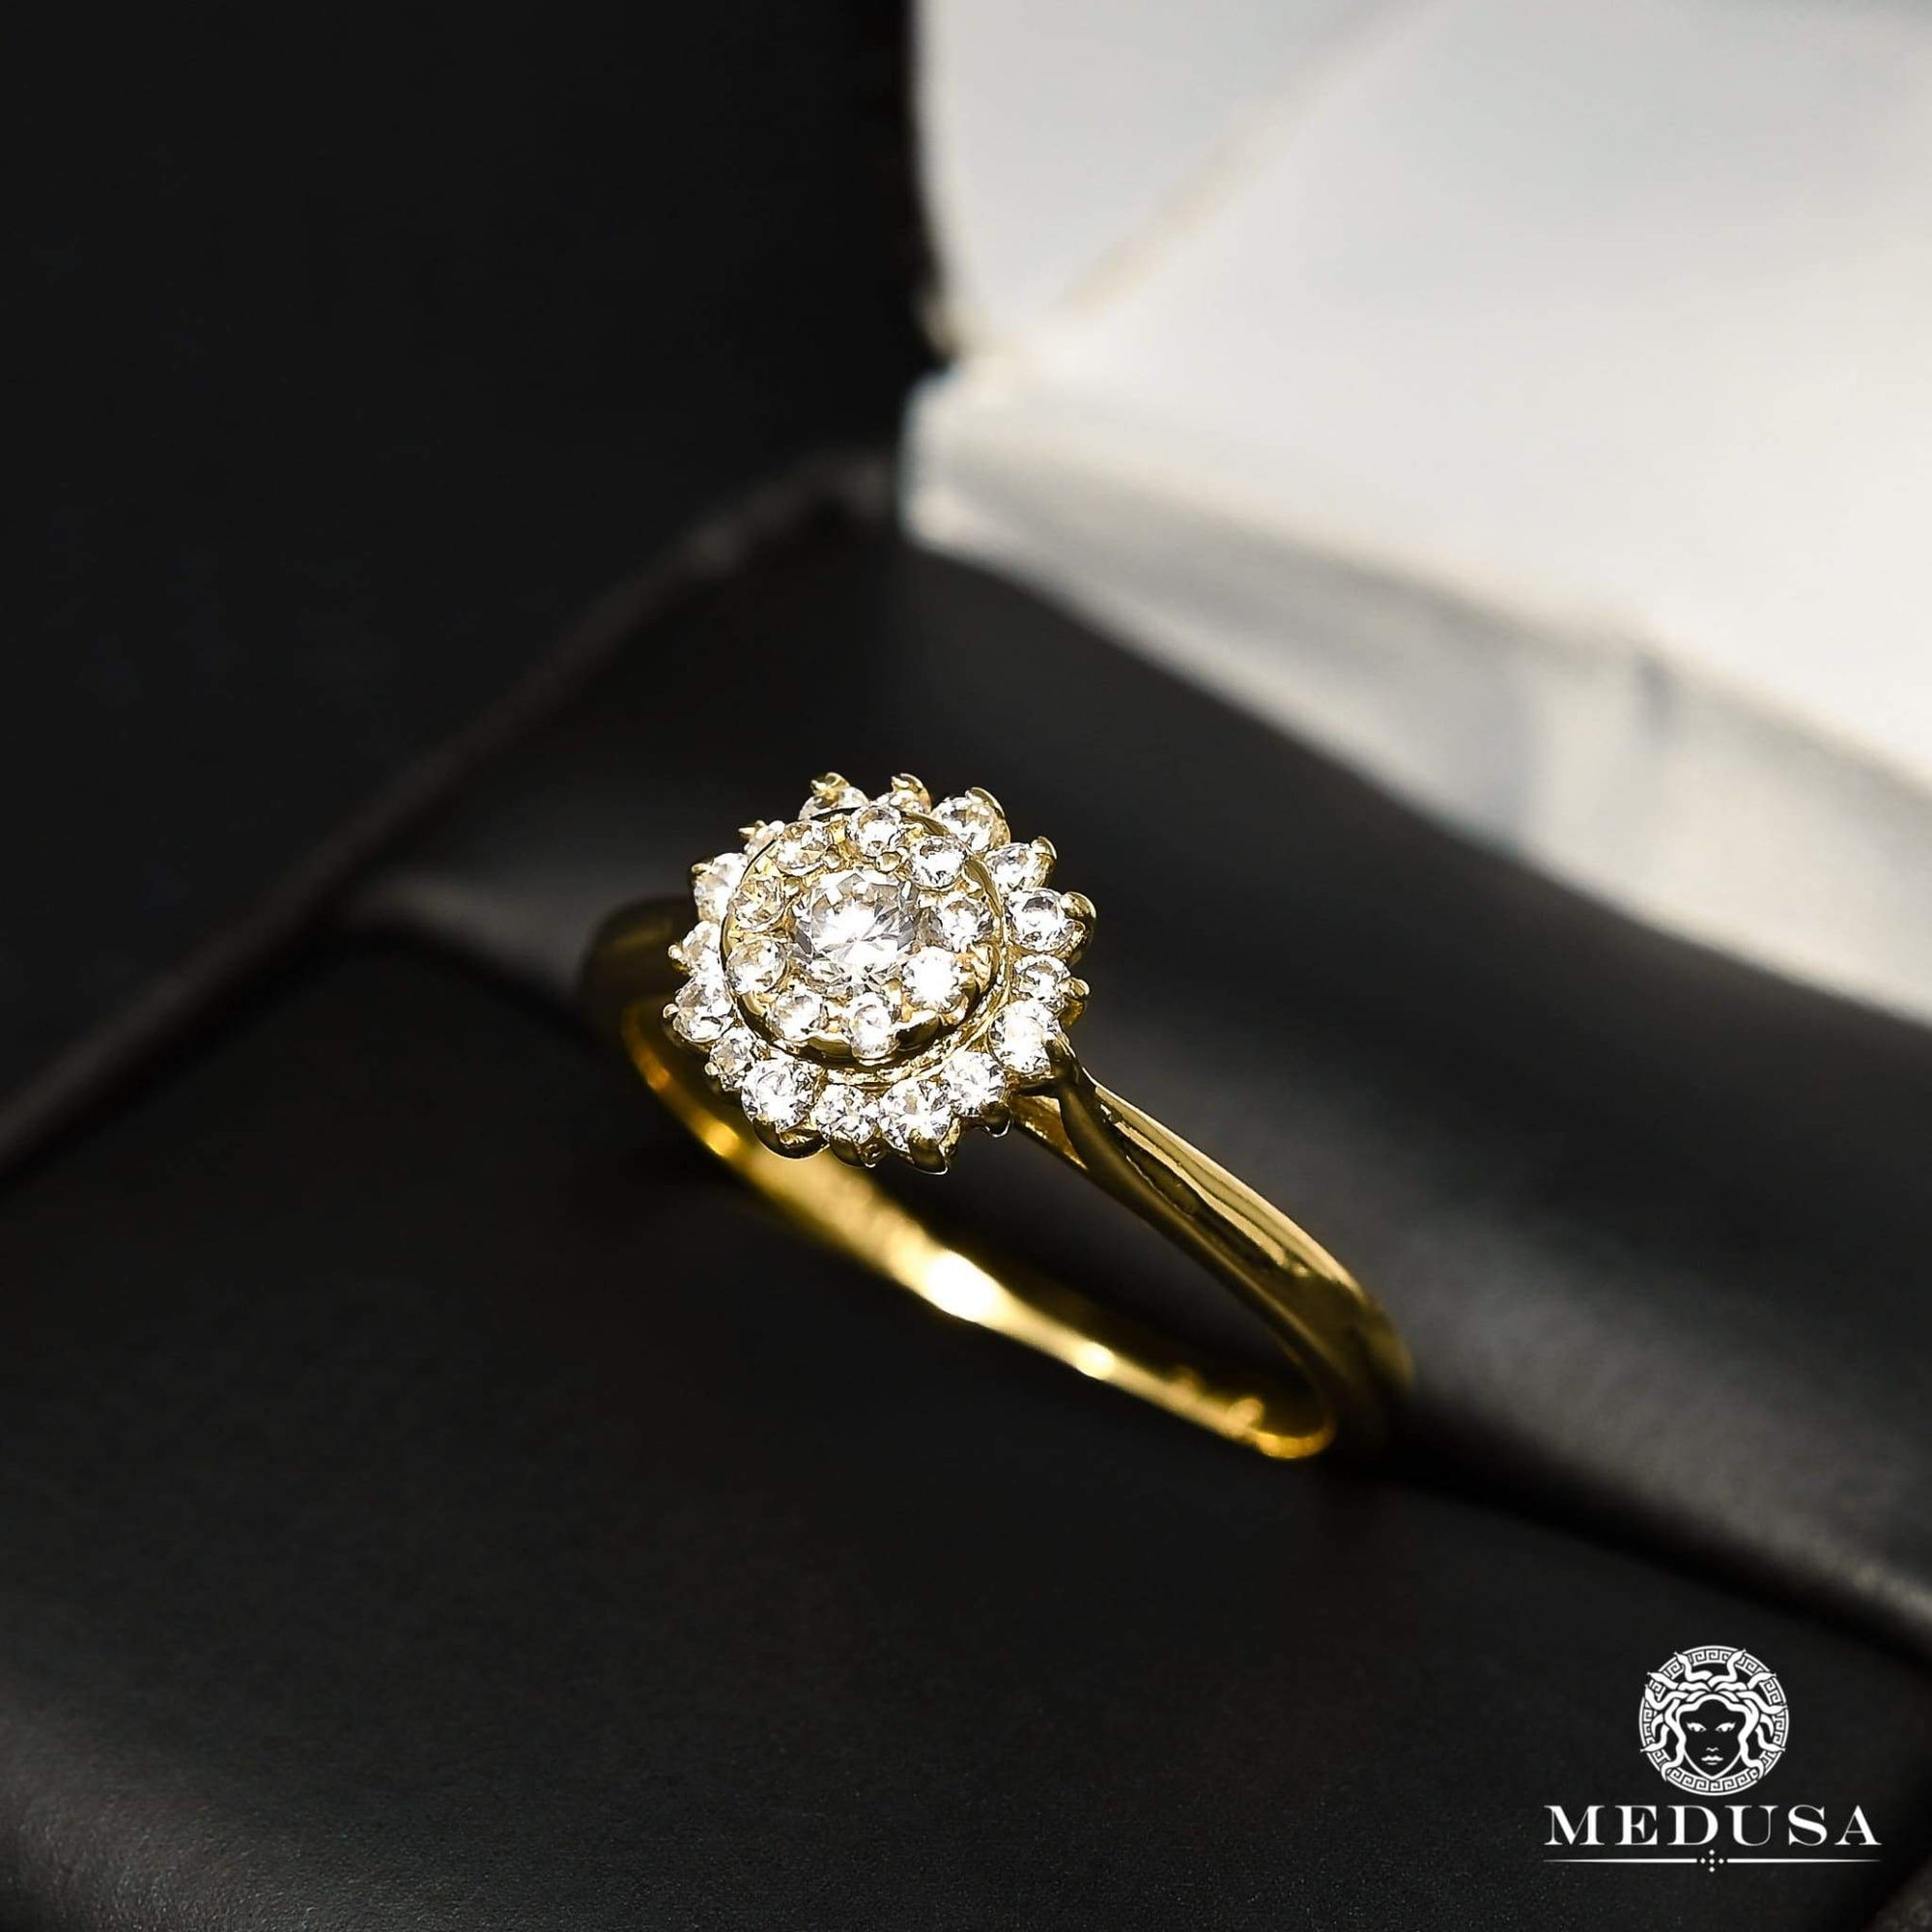 Bague à Diamants en Or 14K | Bague Fiançaille Solitaire F29 - MA0860 Or Jaune